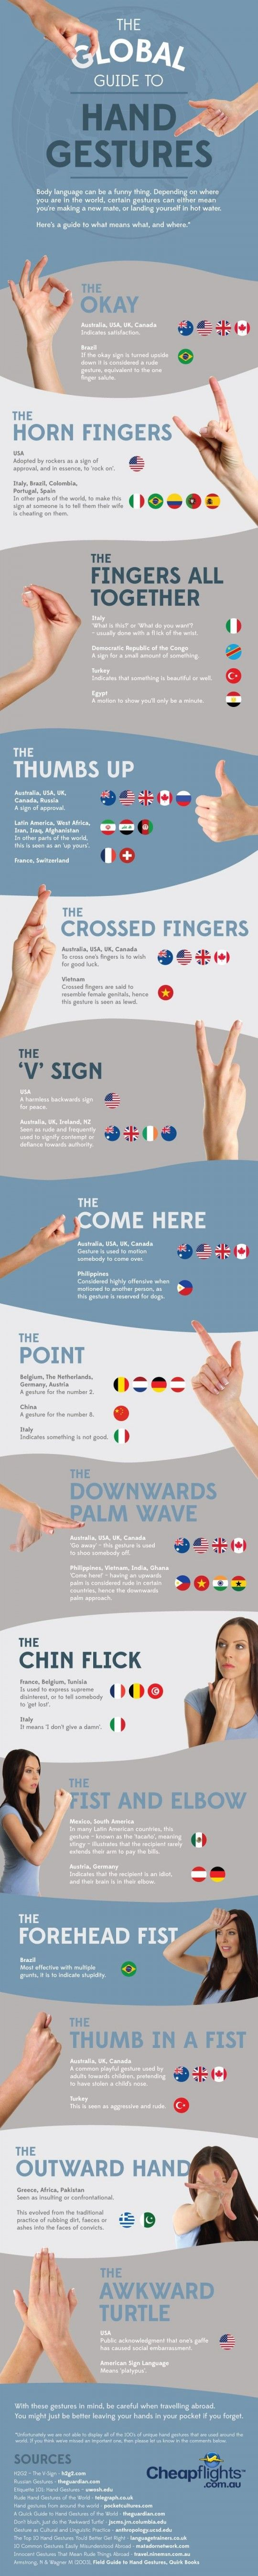 "Infographic: ""The Global Guide to Hand Gestures"""